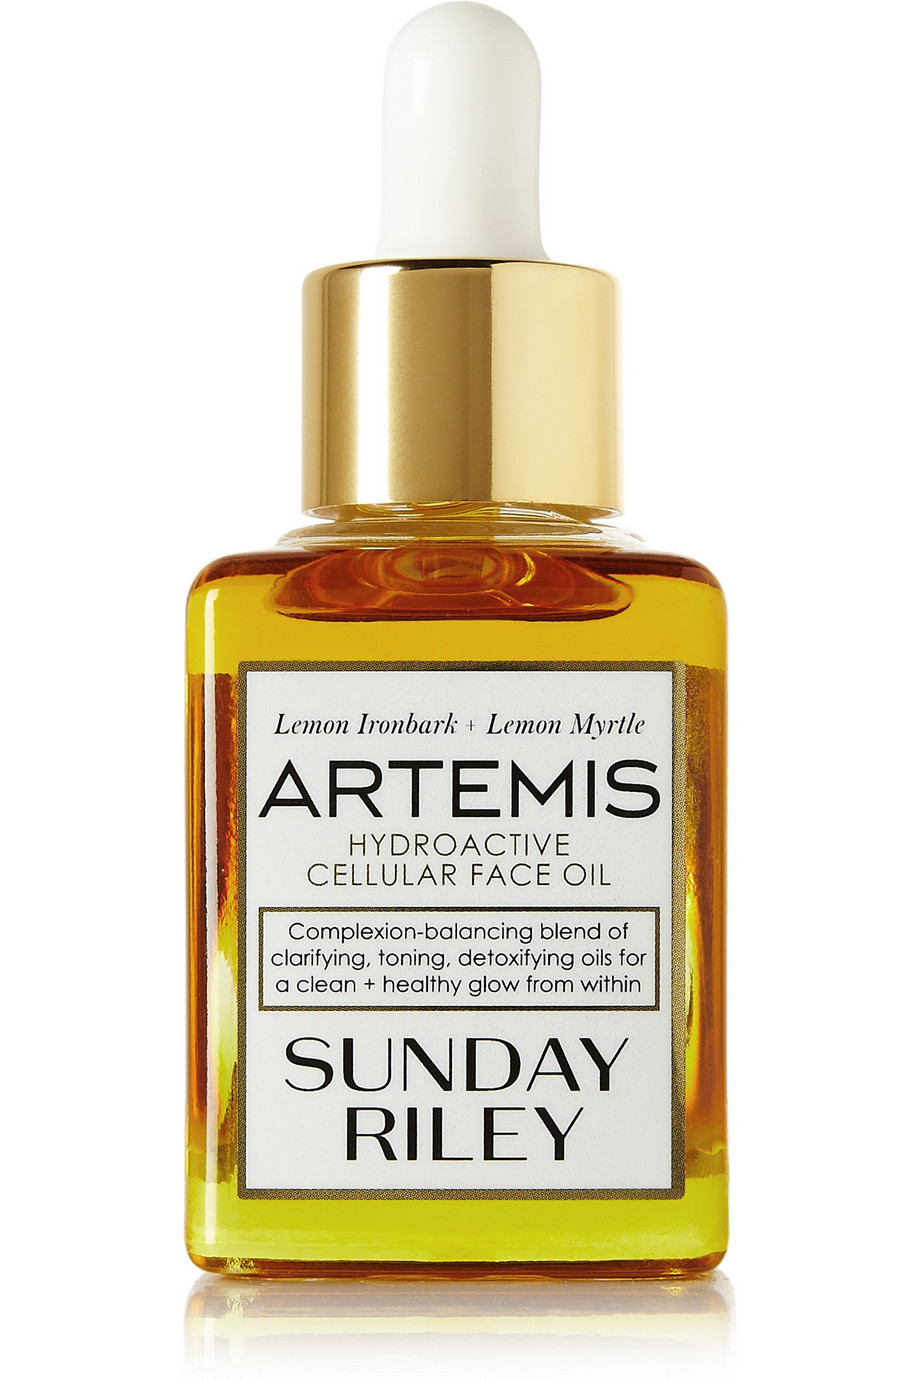 Artemis Hydroactive Cellular Face Oil, 30ml, by Sunday Riley